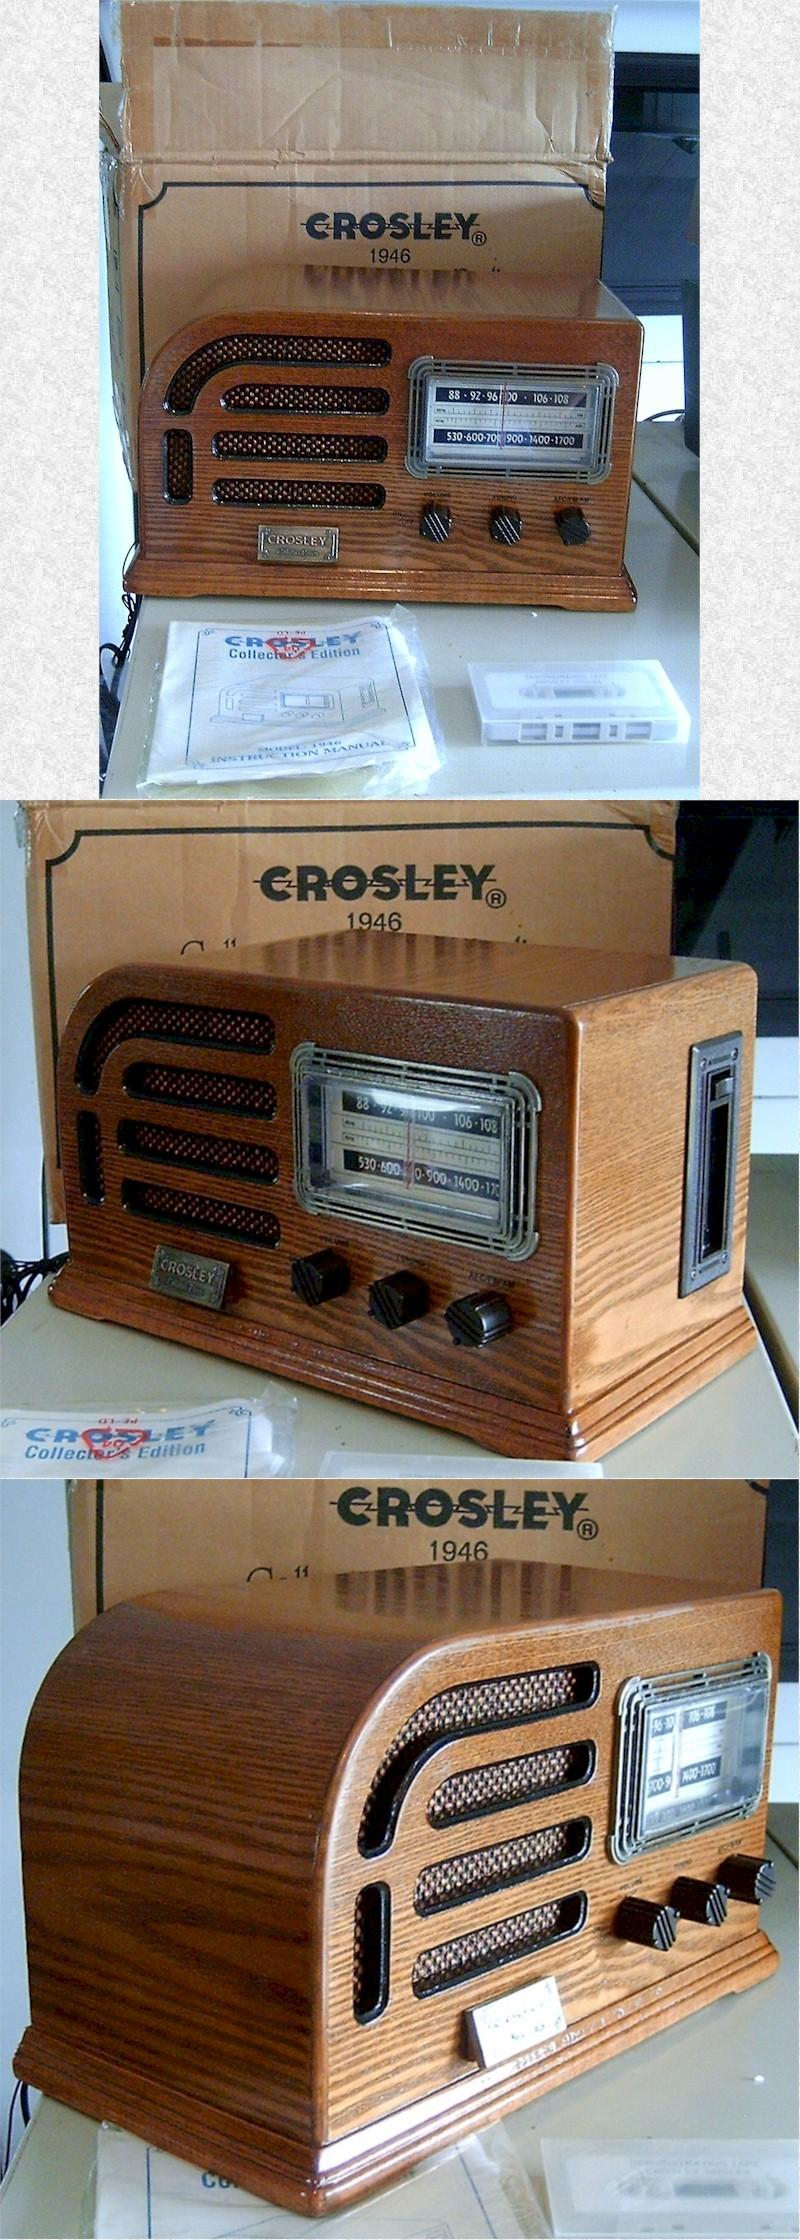 Crosley Reproduction Wooden Table Radio